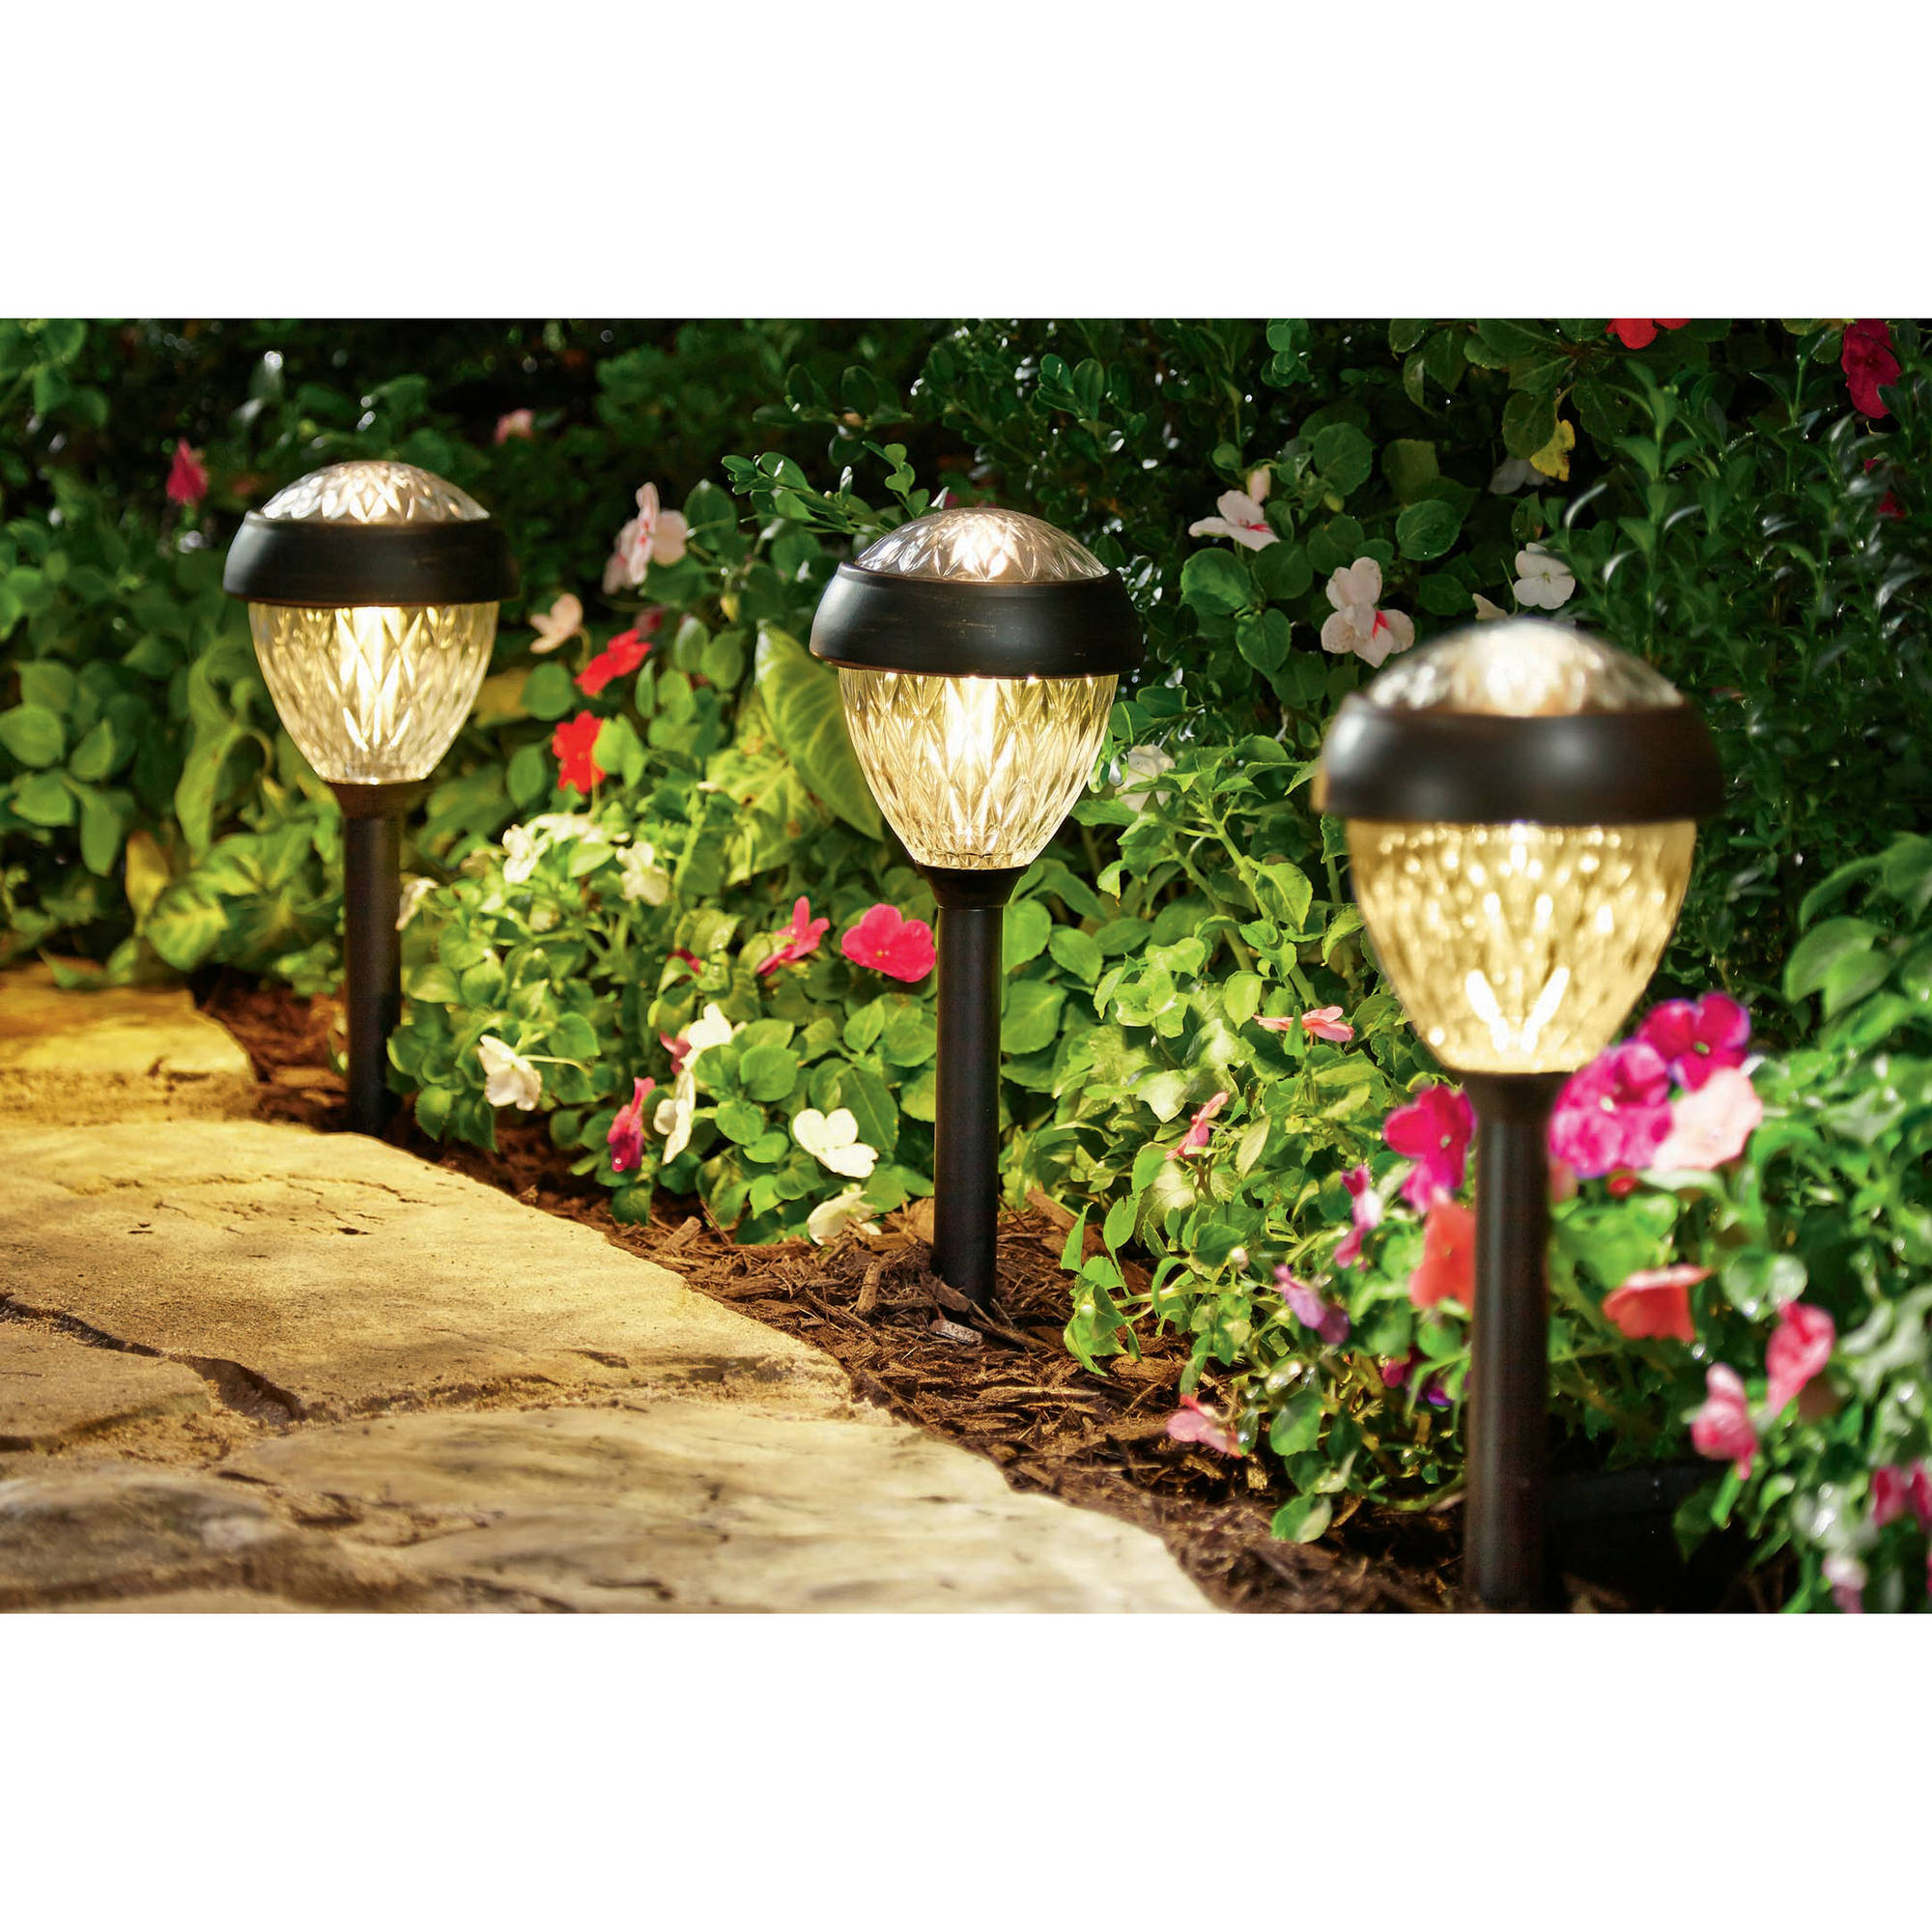 Better homes and gardens park view solar powered landscape light better homes and gardens park view solar powered landscape light brushed bronze finish walmart aloadofball Images